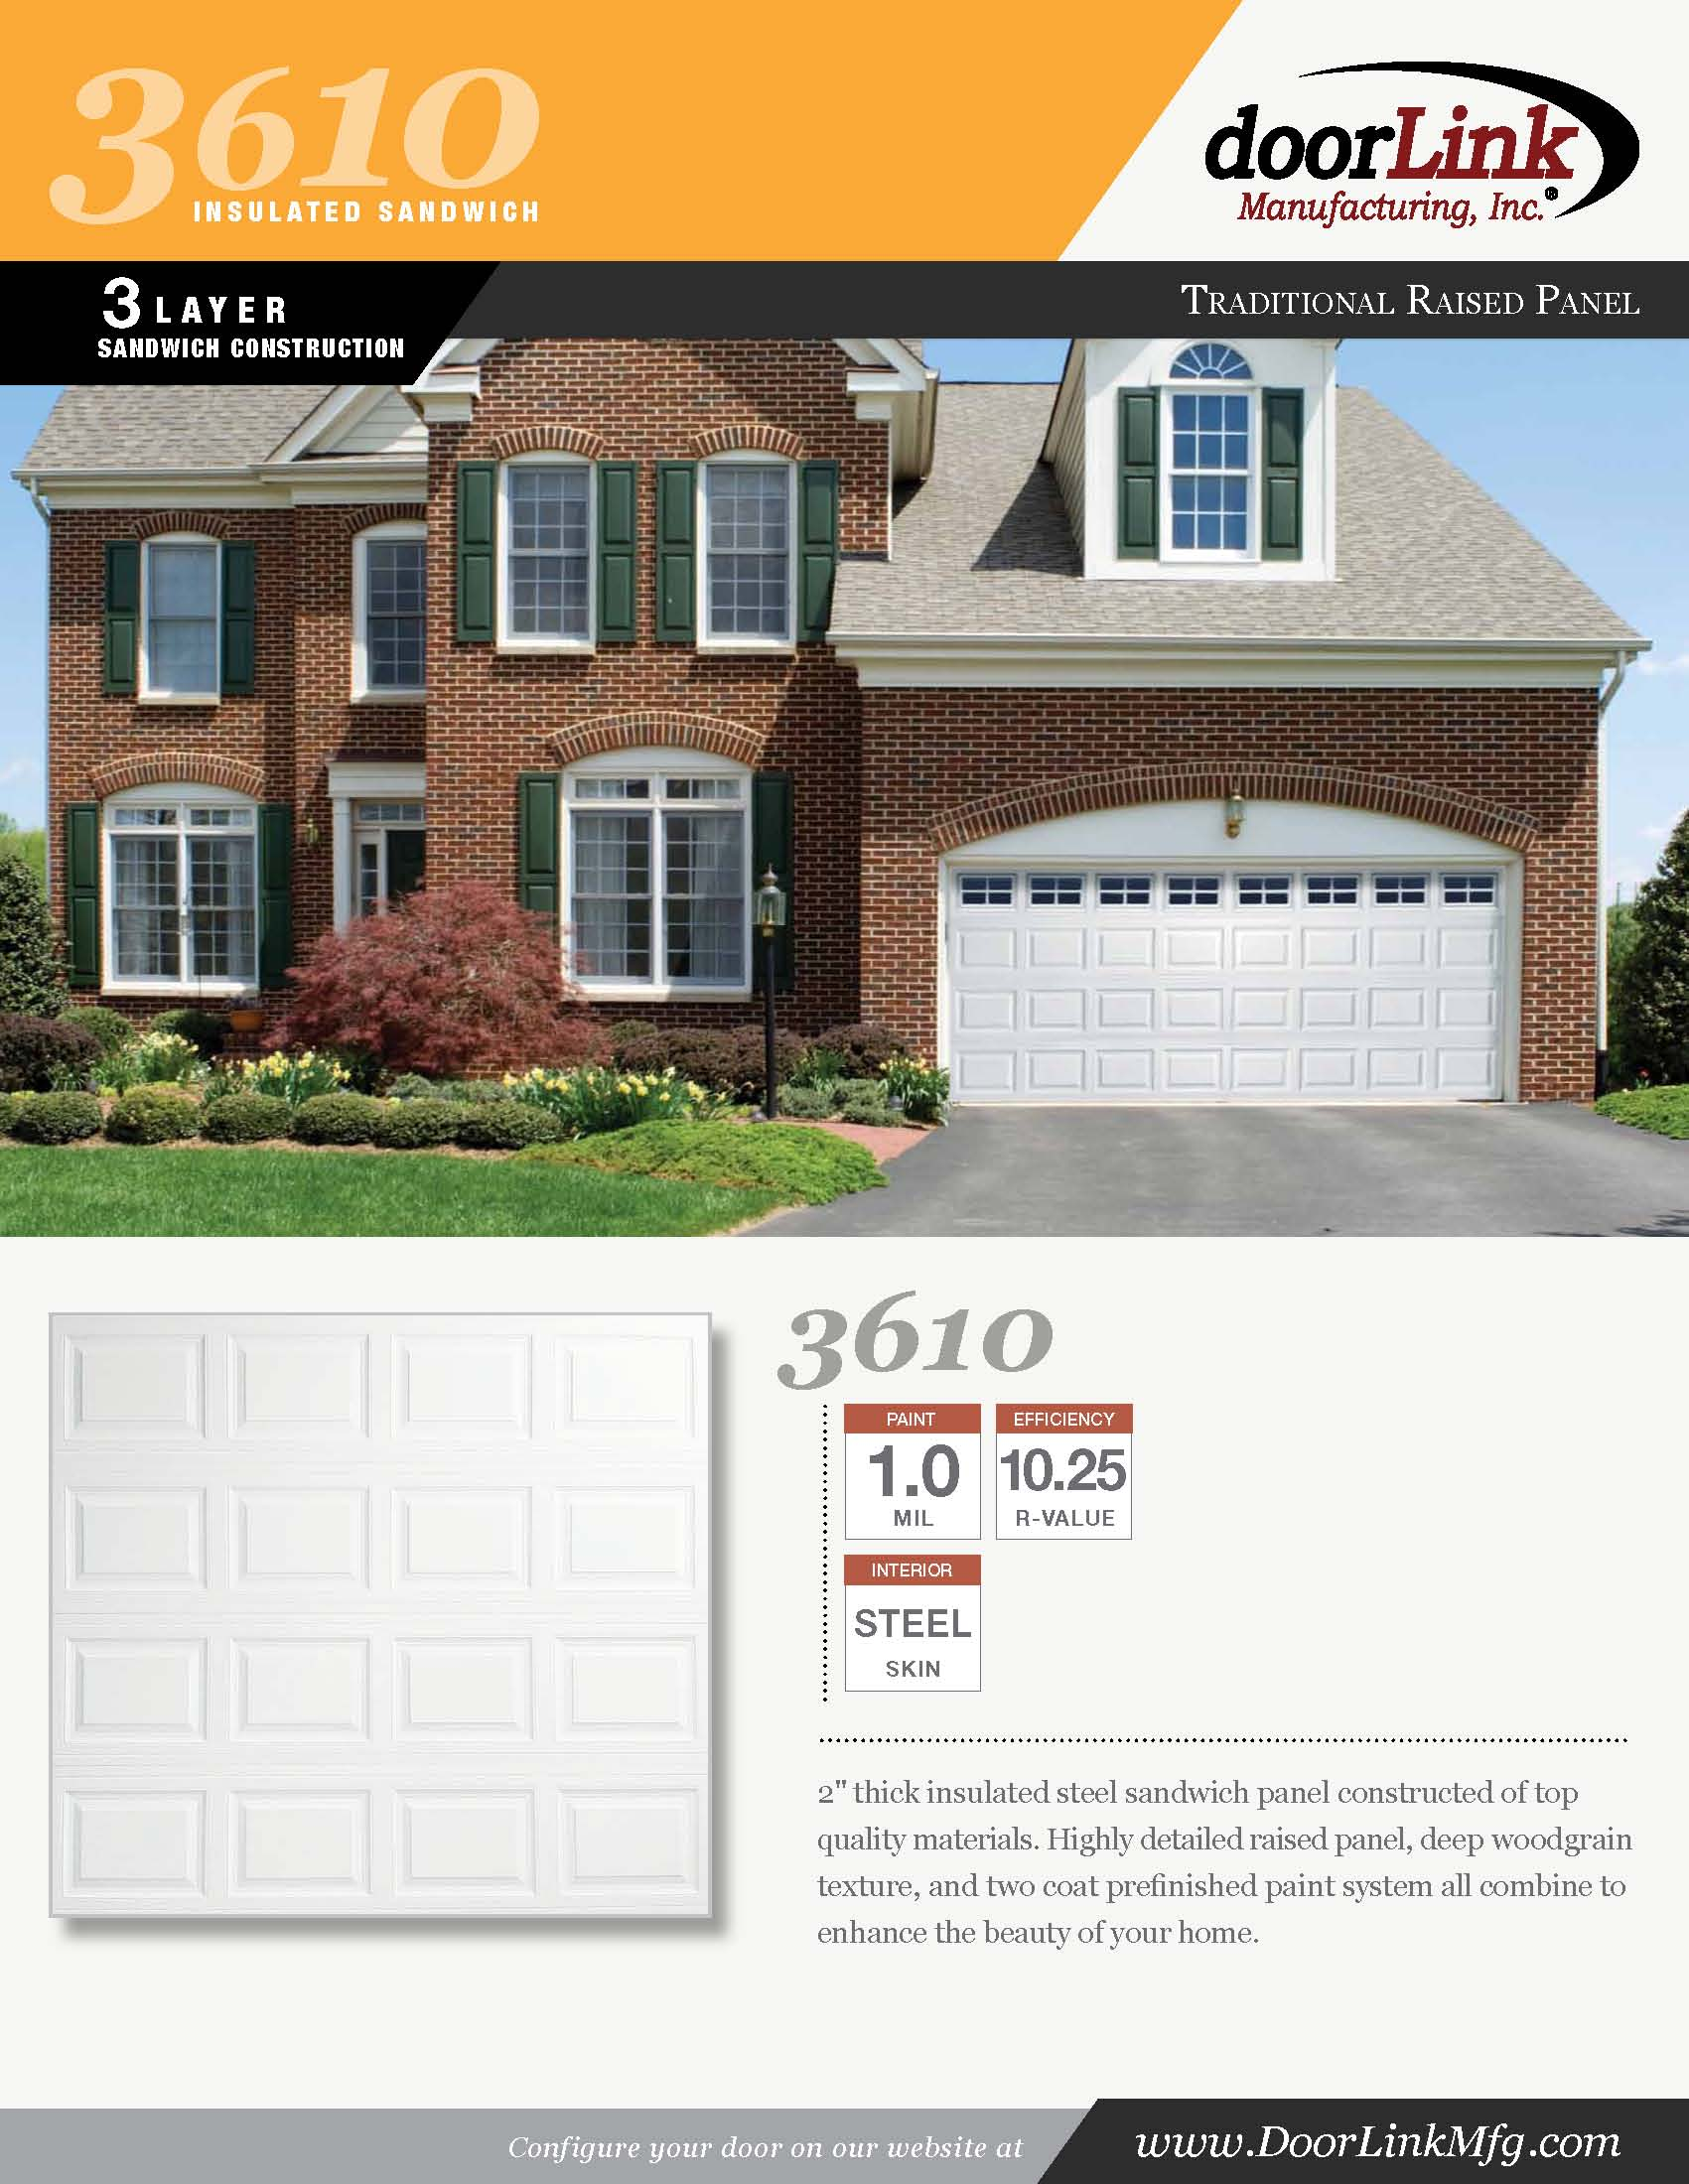 Doorlink-Brochure-3610_Page_1